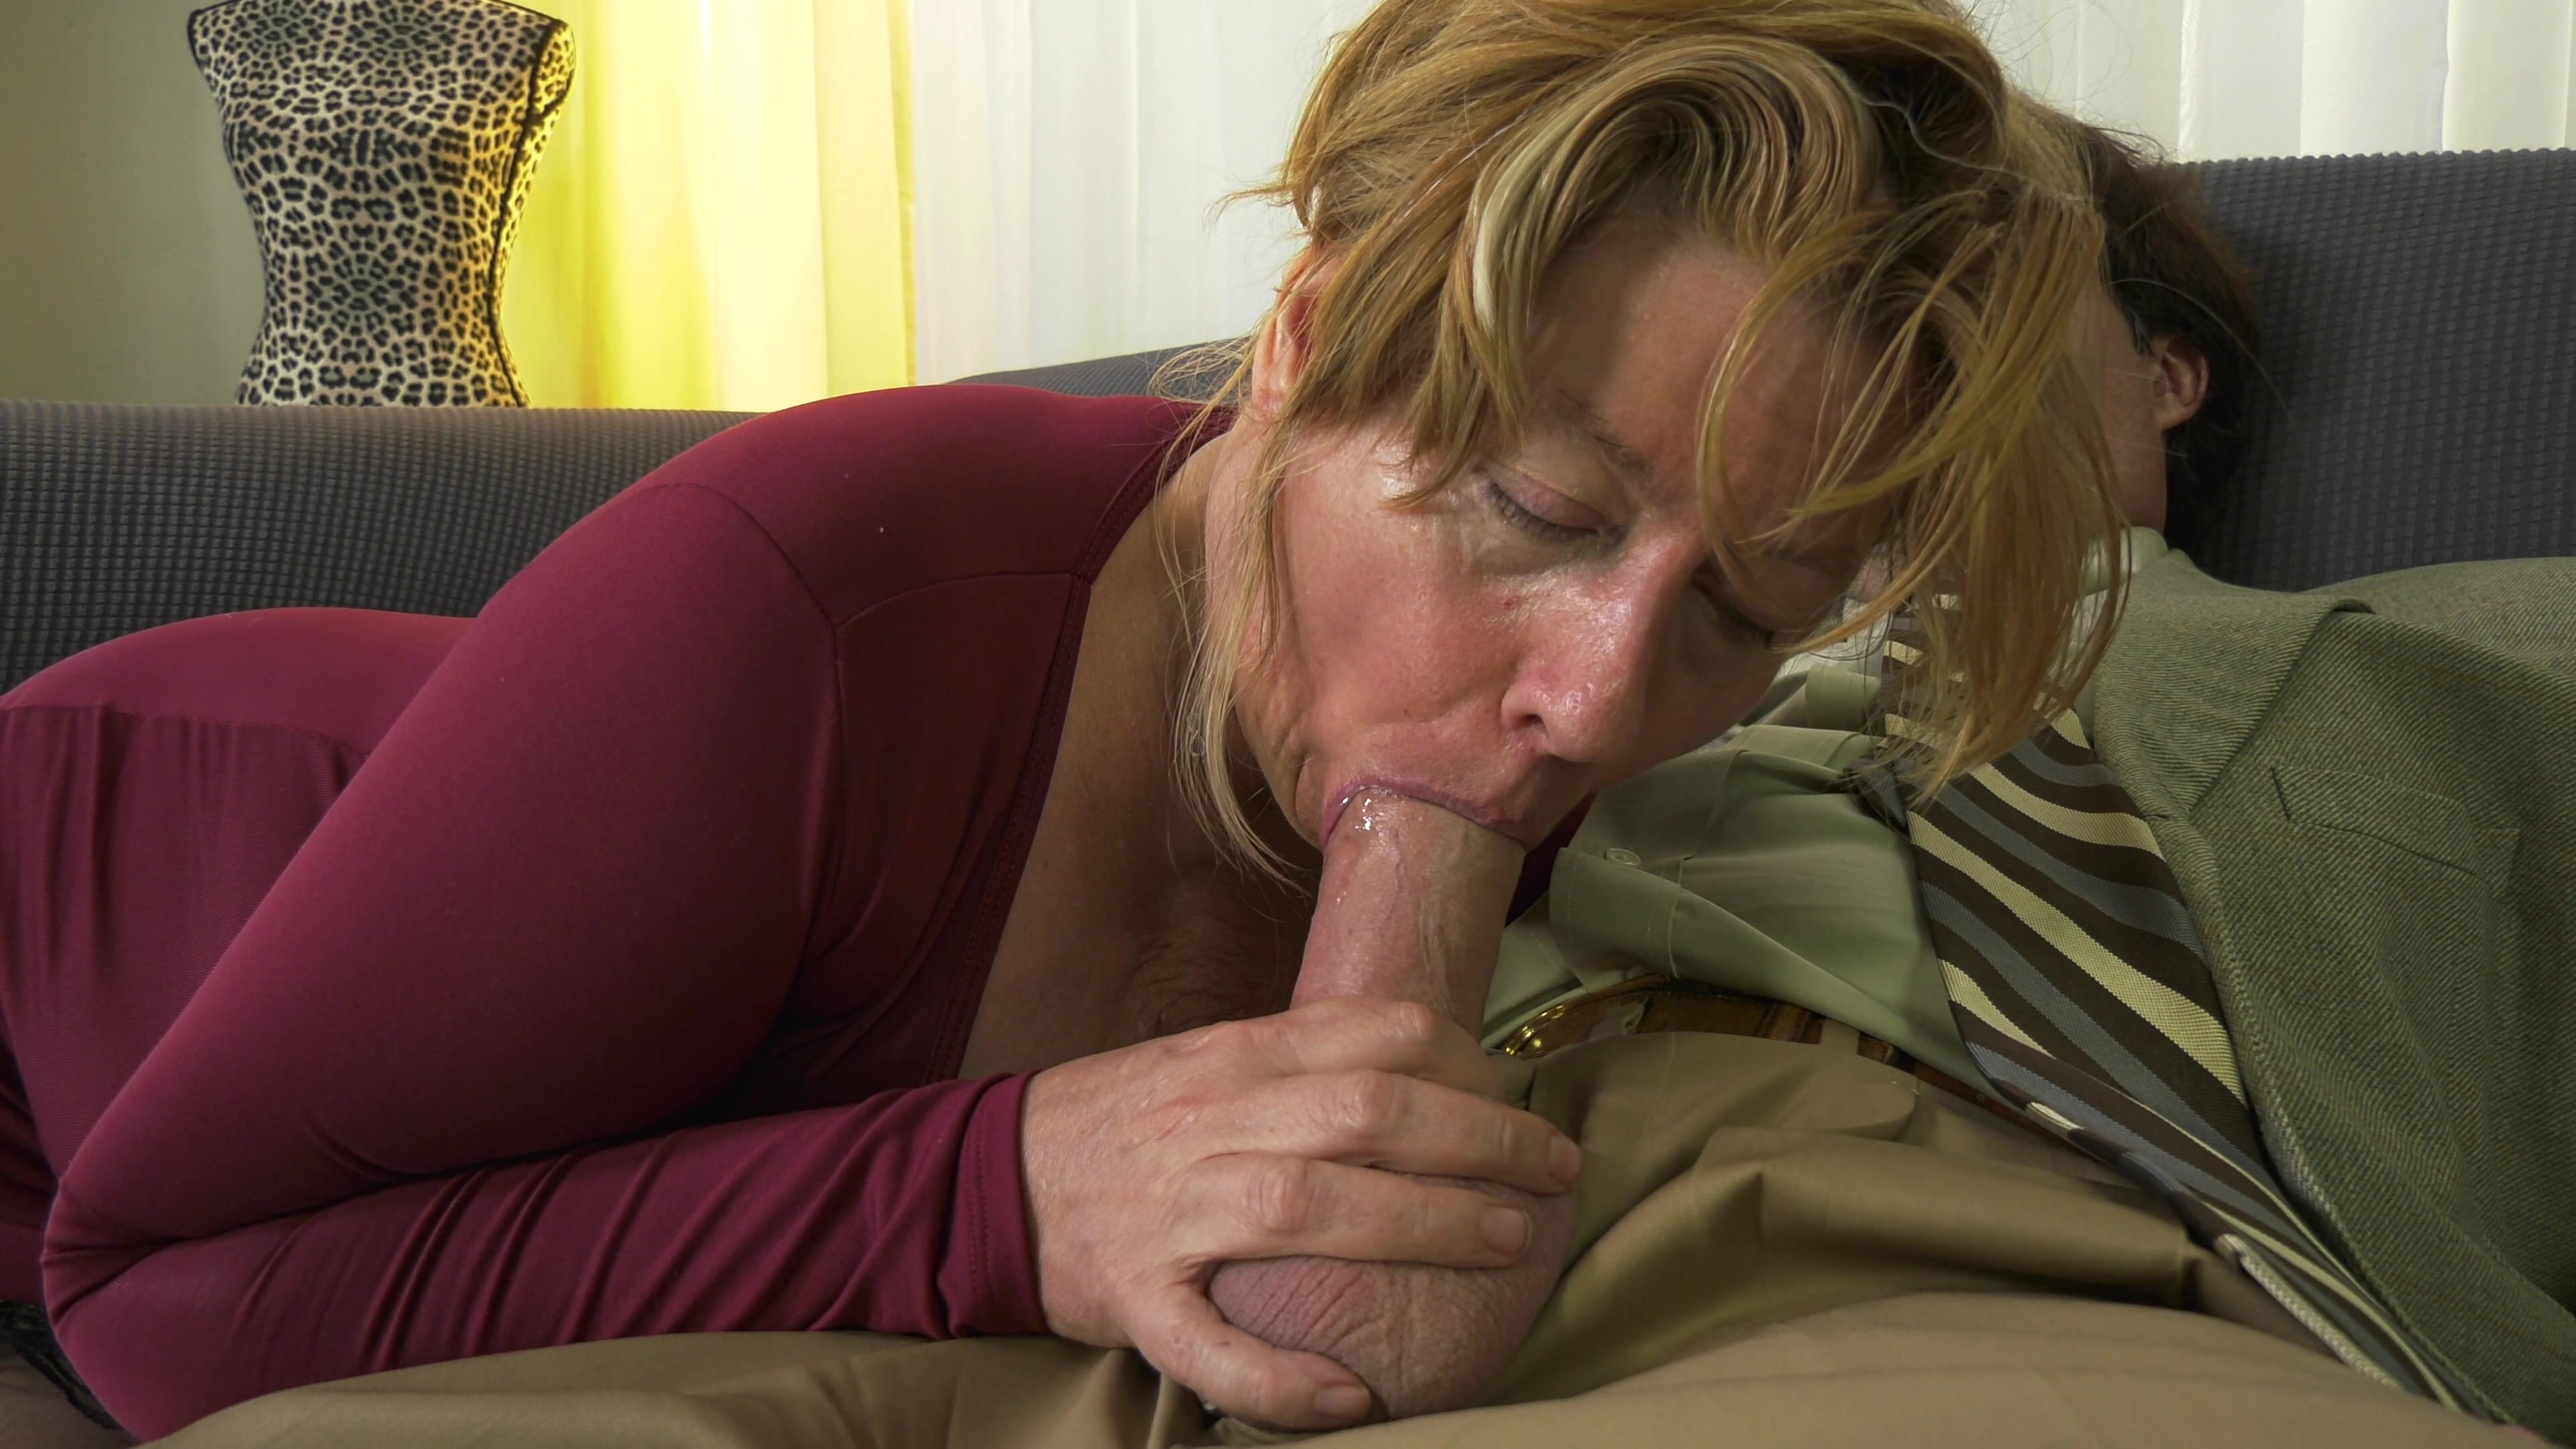 horny grannies love to fuck 12 | devil's film | sugarinstant